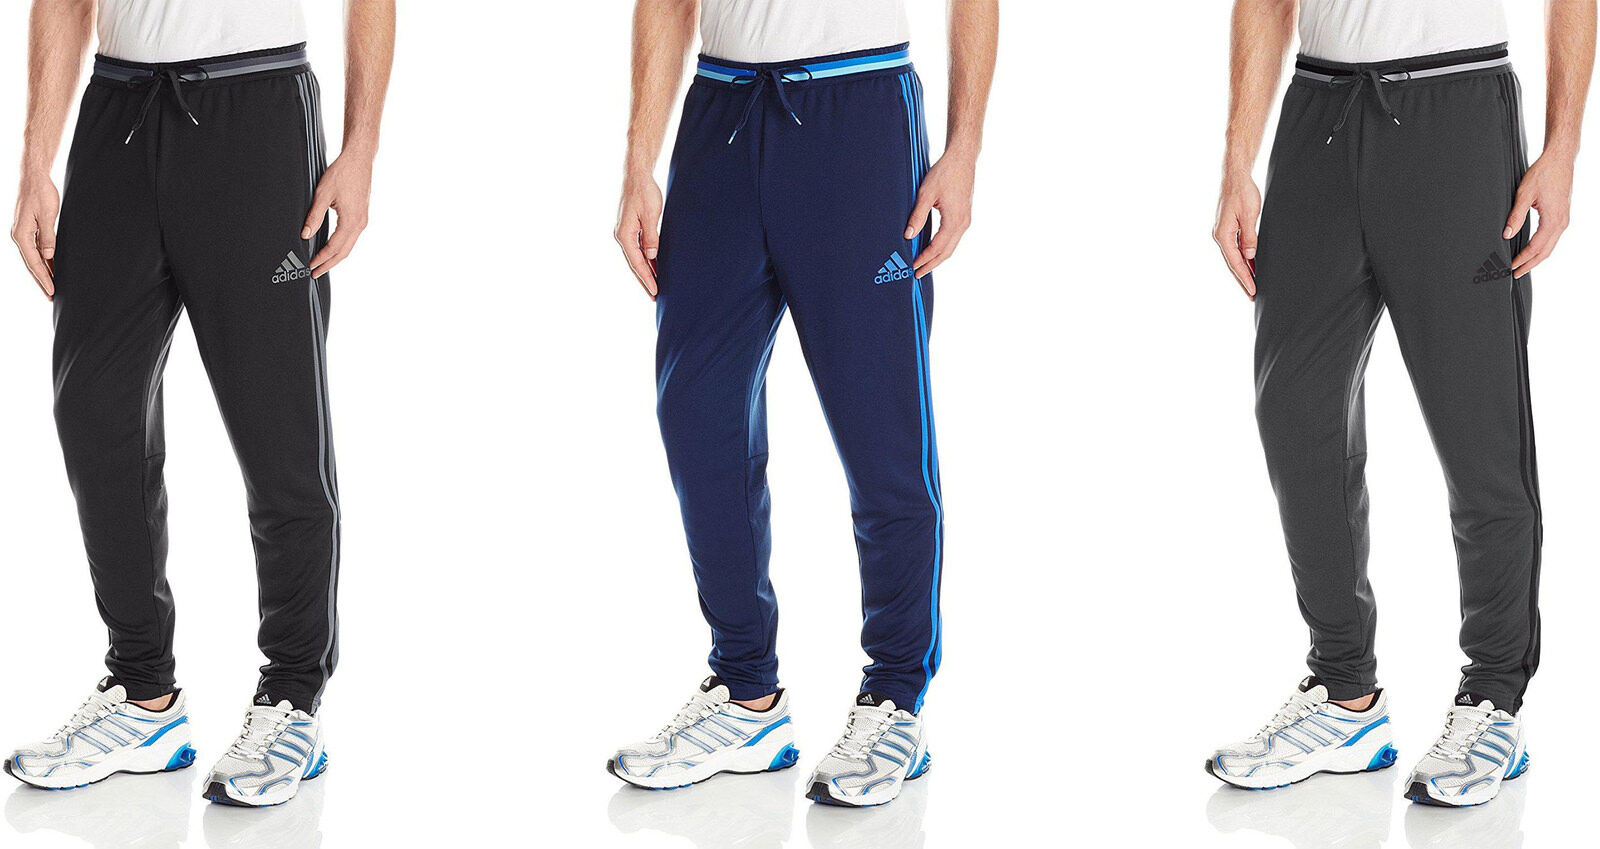 a137680b6 adidas Men's Condivo 16 Training Pants, 3 Colors | eBay